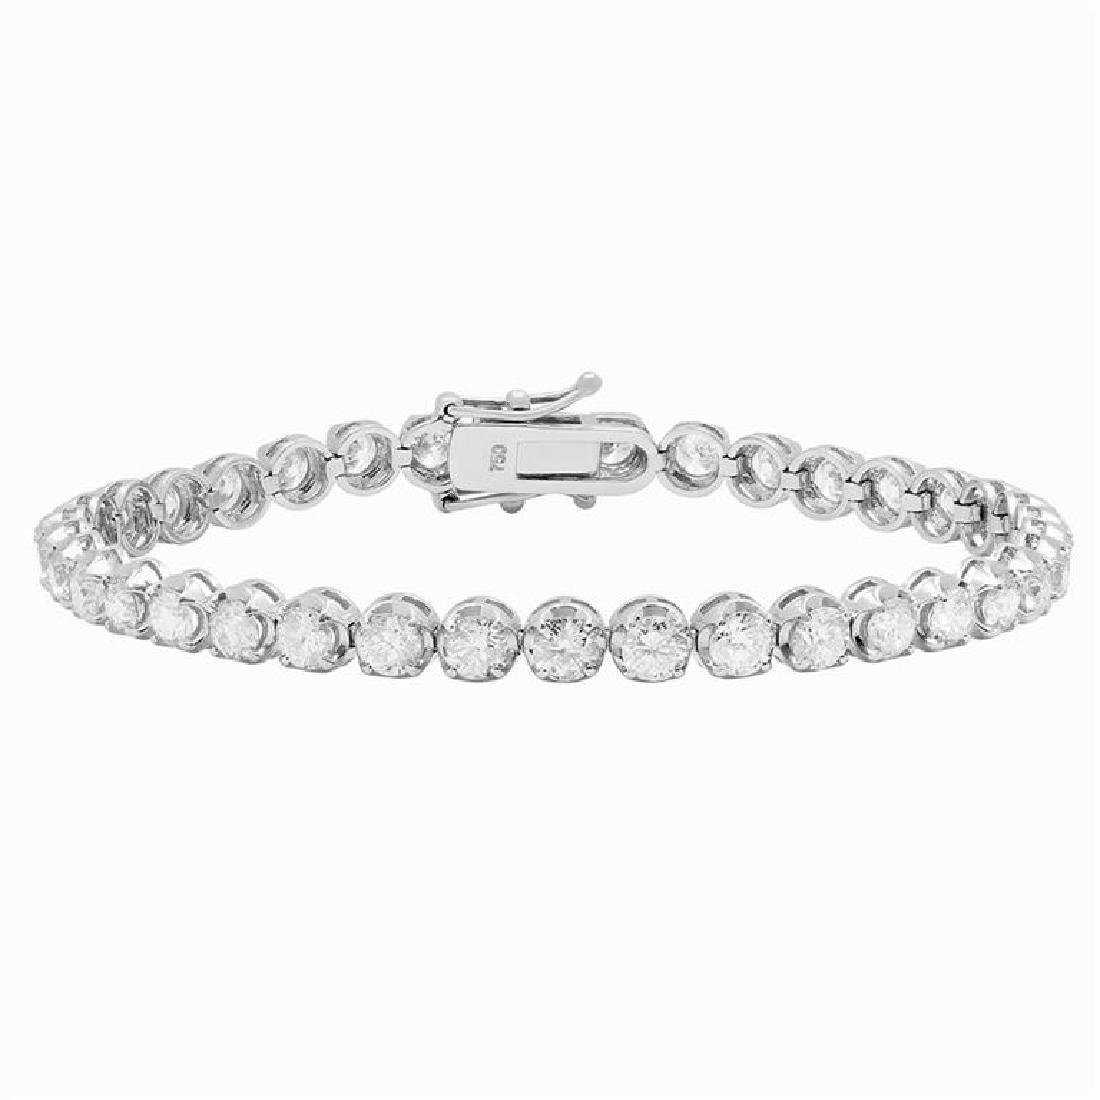 18k White Gold 7.32ct Diamond Tennis Bracelet